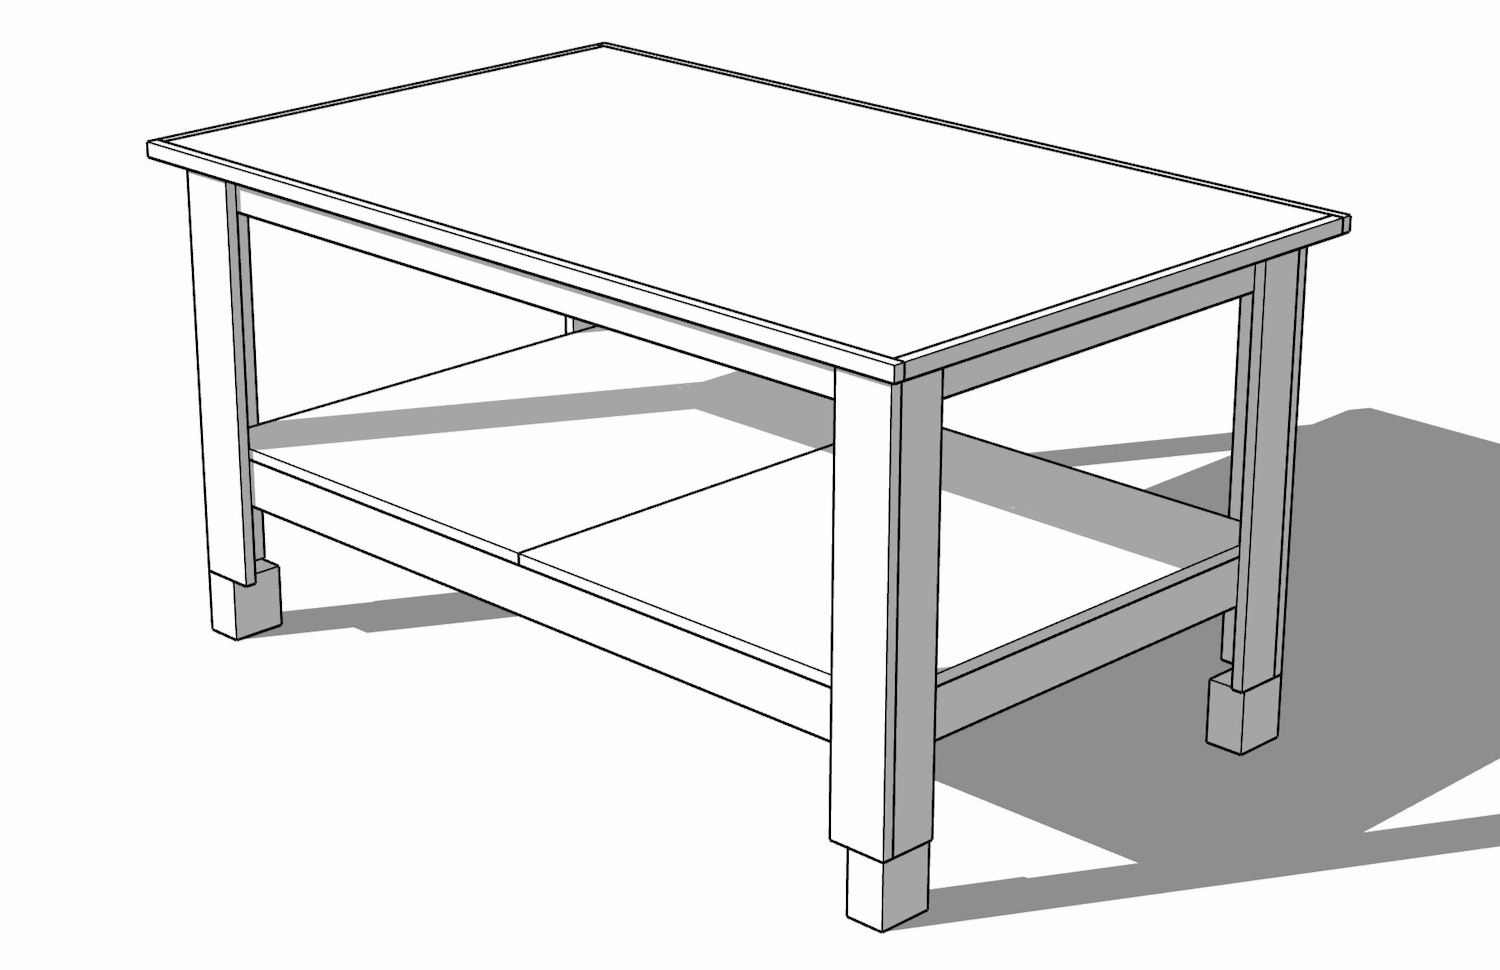 Outfeed Table SketchUp File